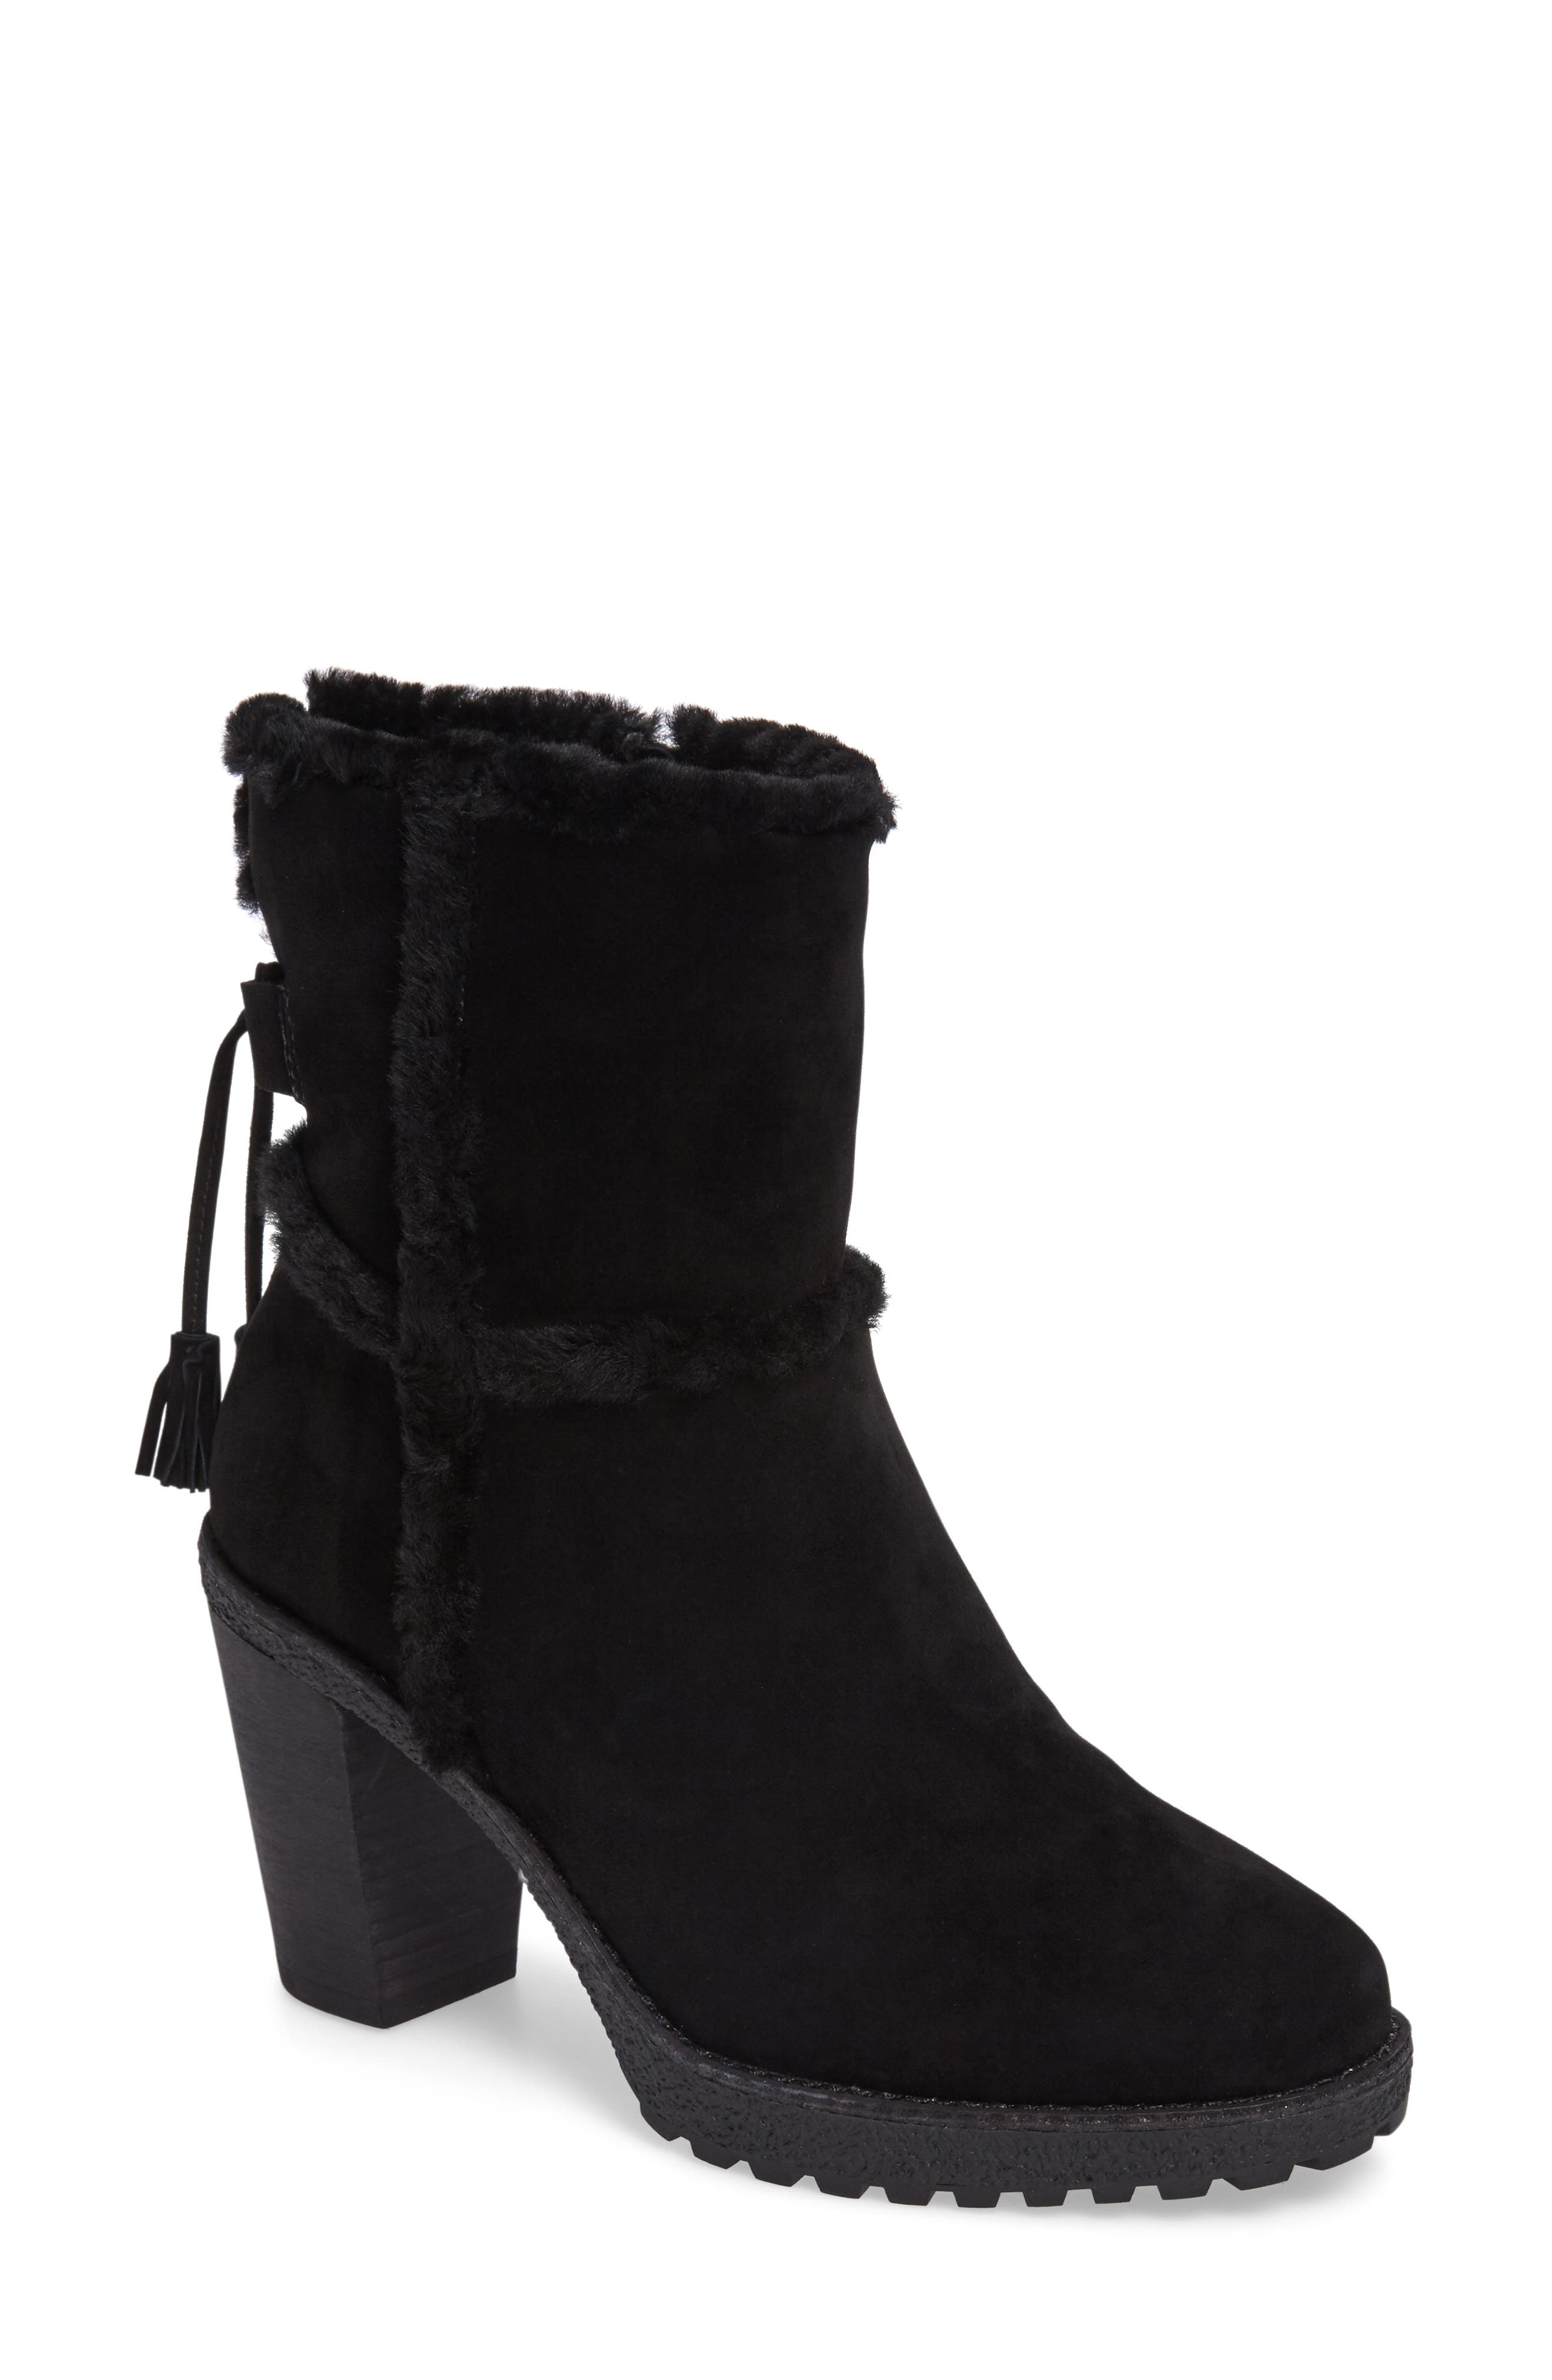 Jen Genuine Shearling Lined Water Resistant Boot,                             Alternate thumbnail 2, color,                             001